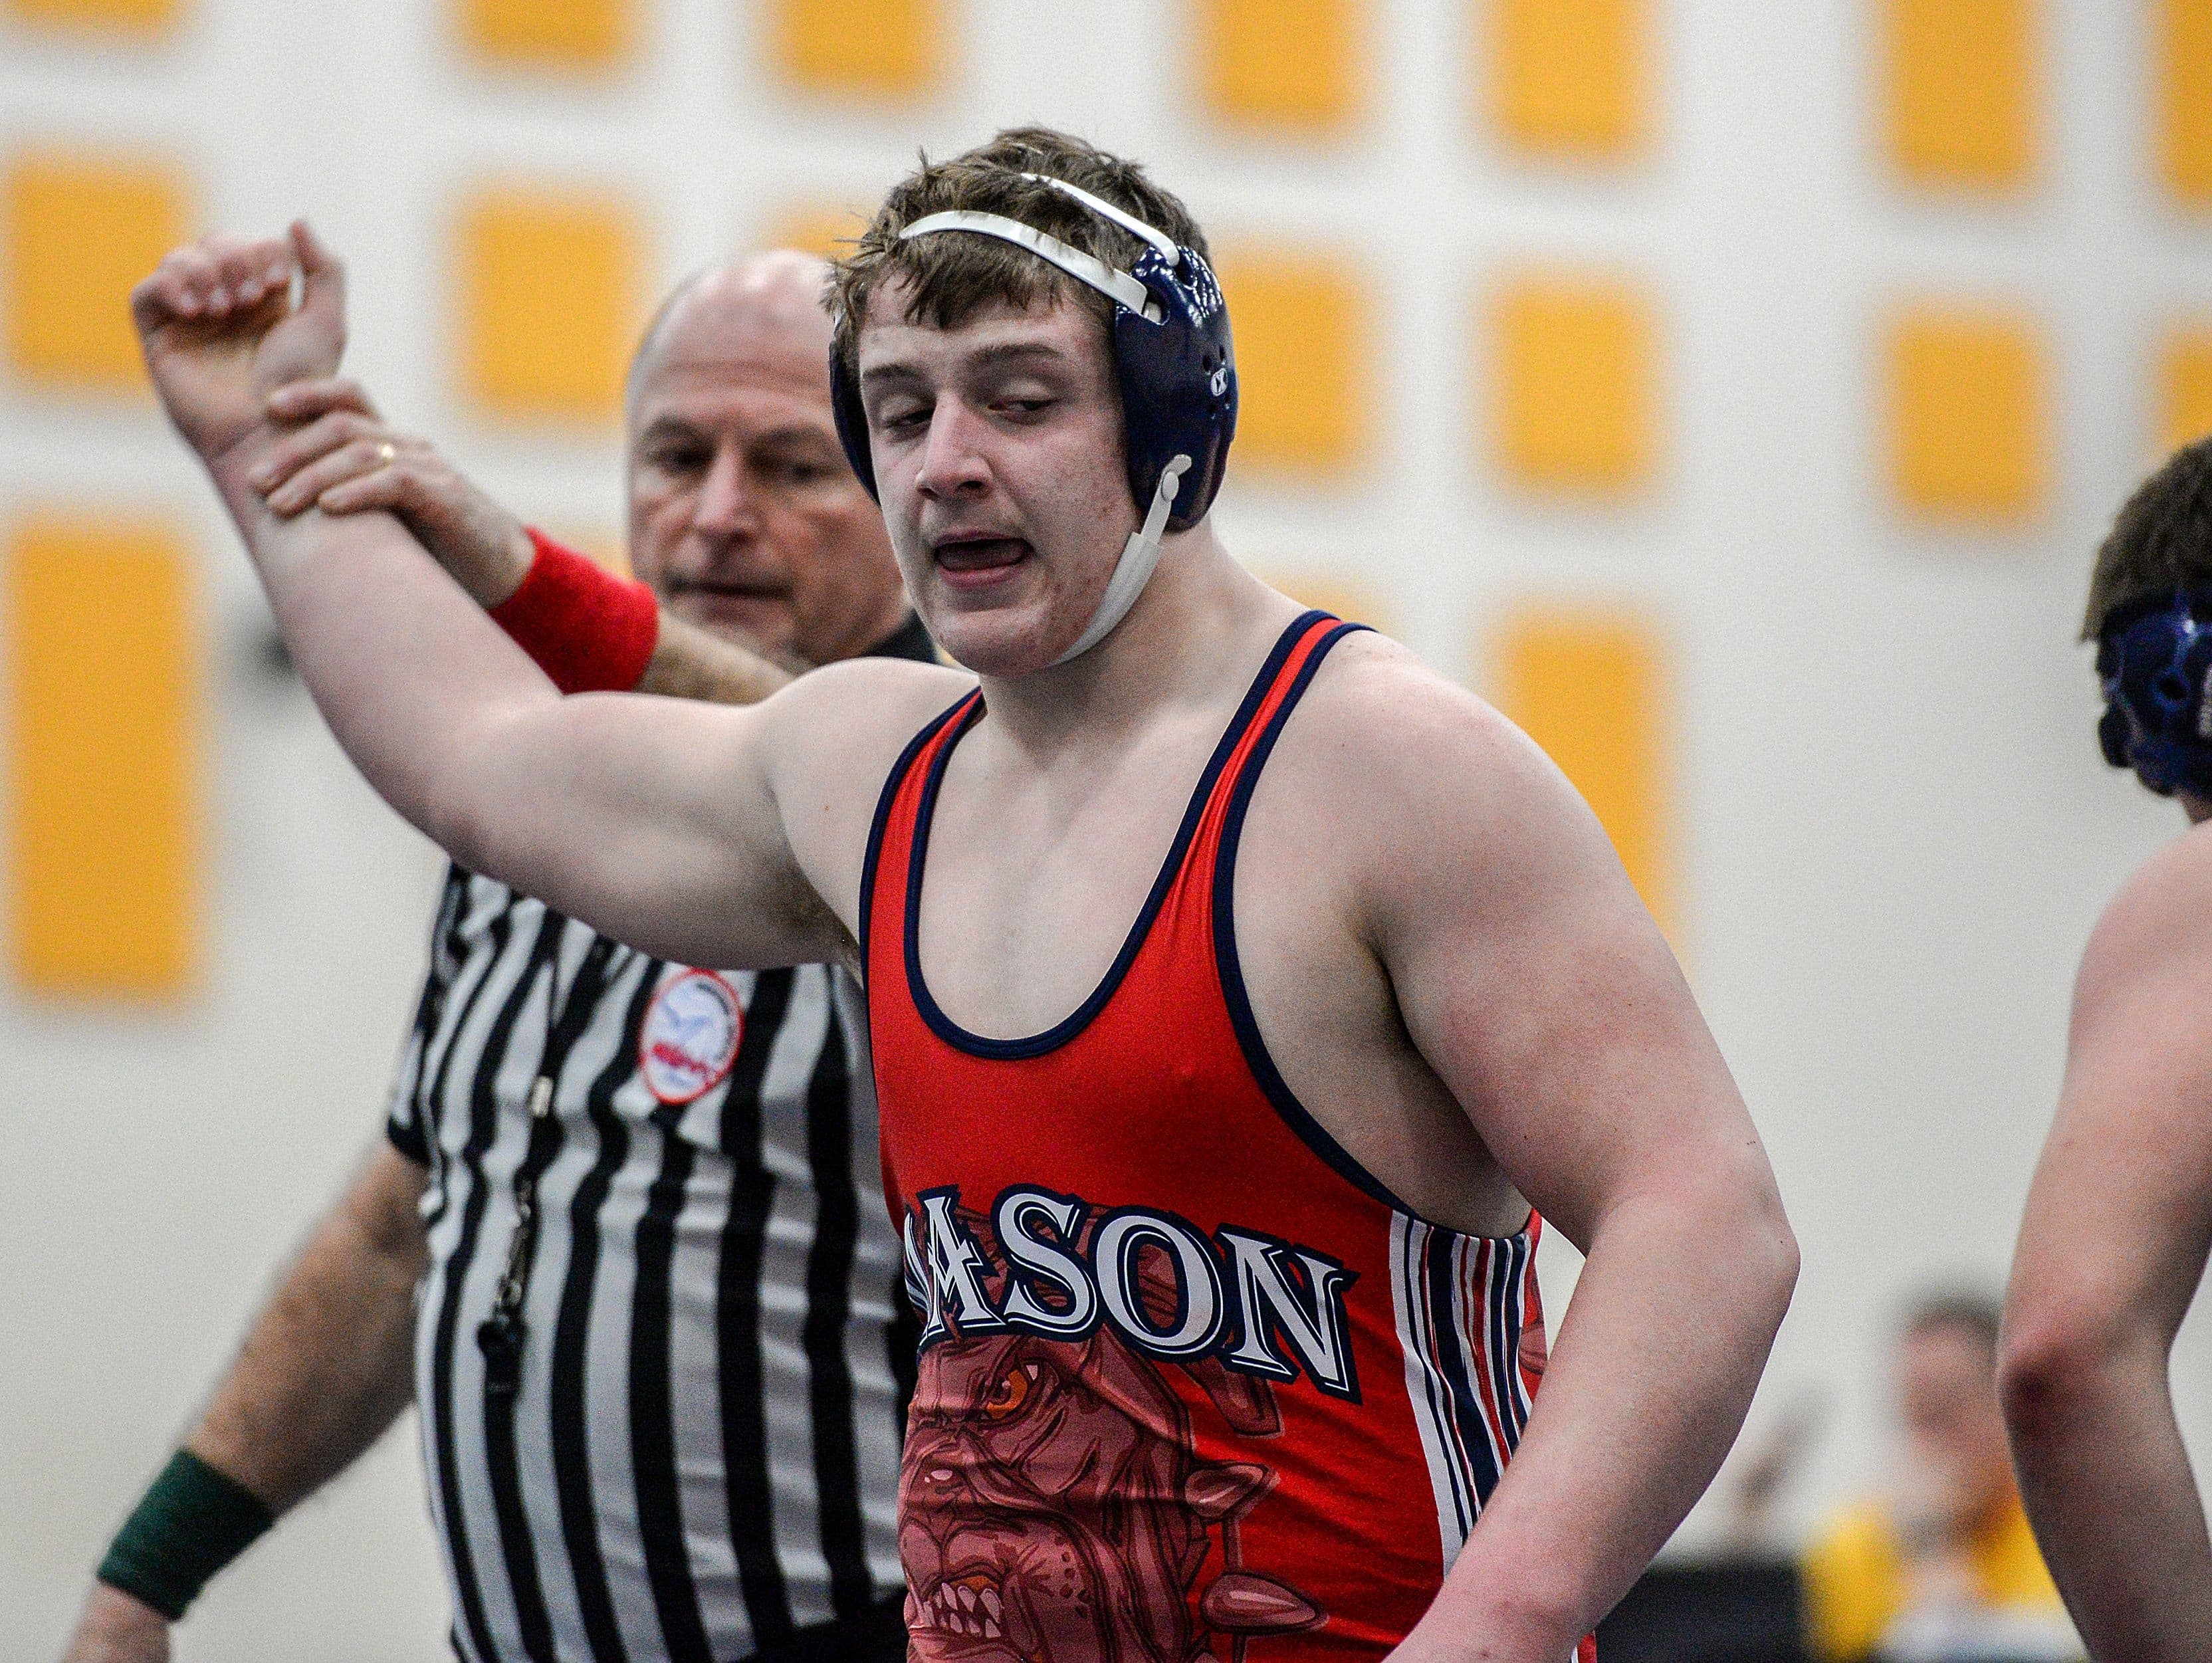 Mason's Ben Surato, gets the pin for the win over Chelsea's Zach Taylor in the 215 weight class at the D2 District tournament held at DeWitt Saturday, February 11, 2017.